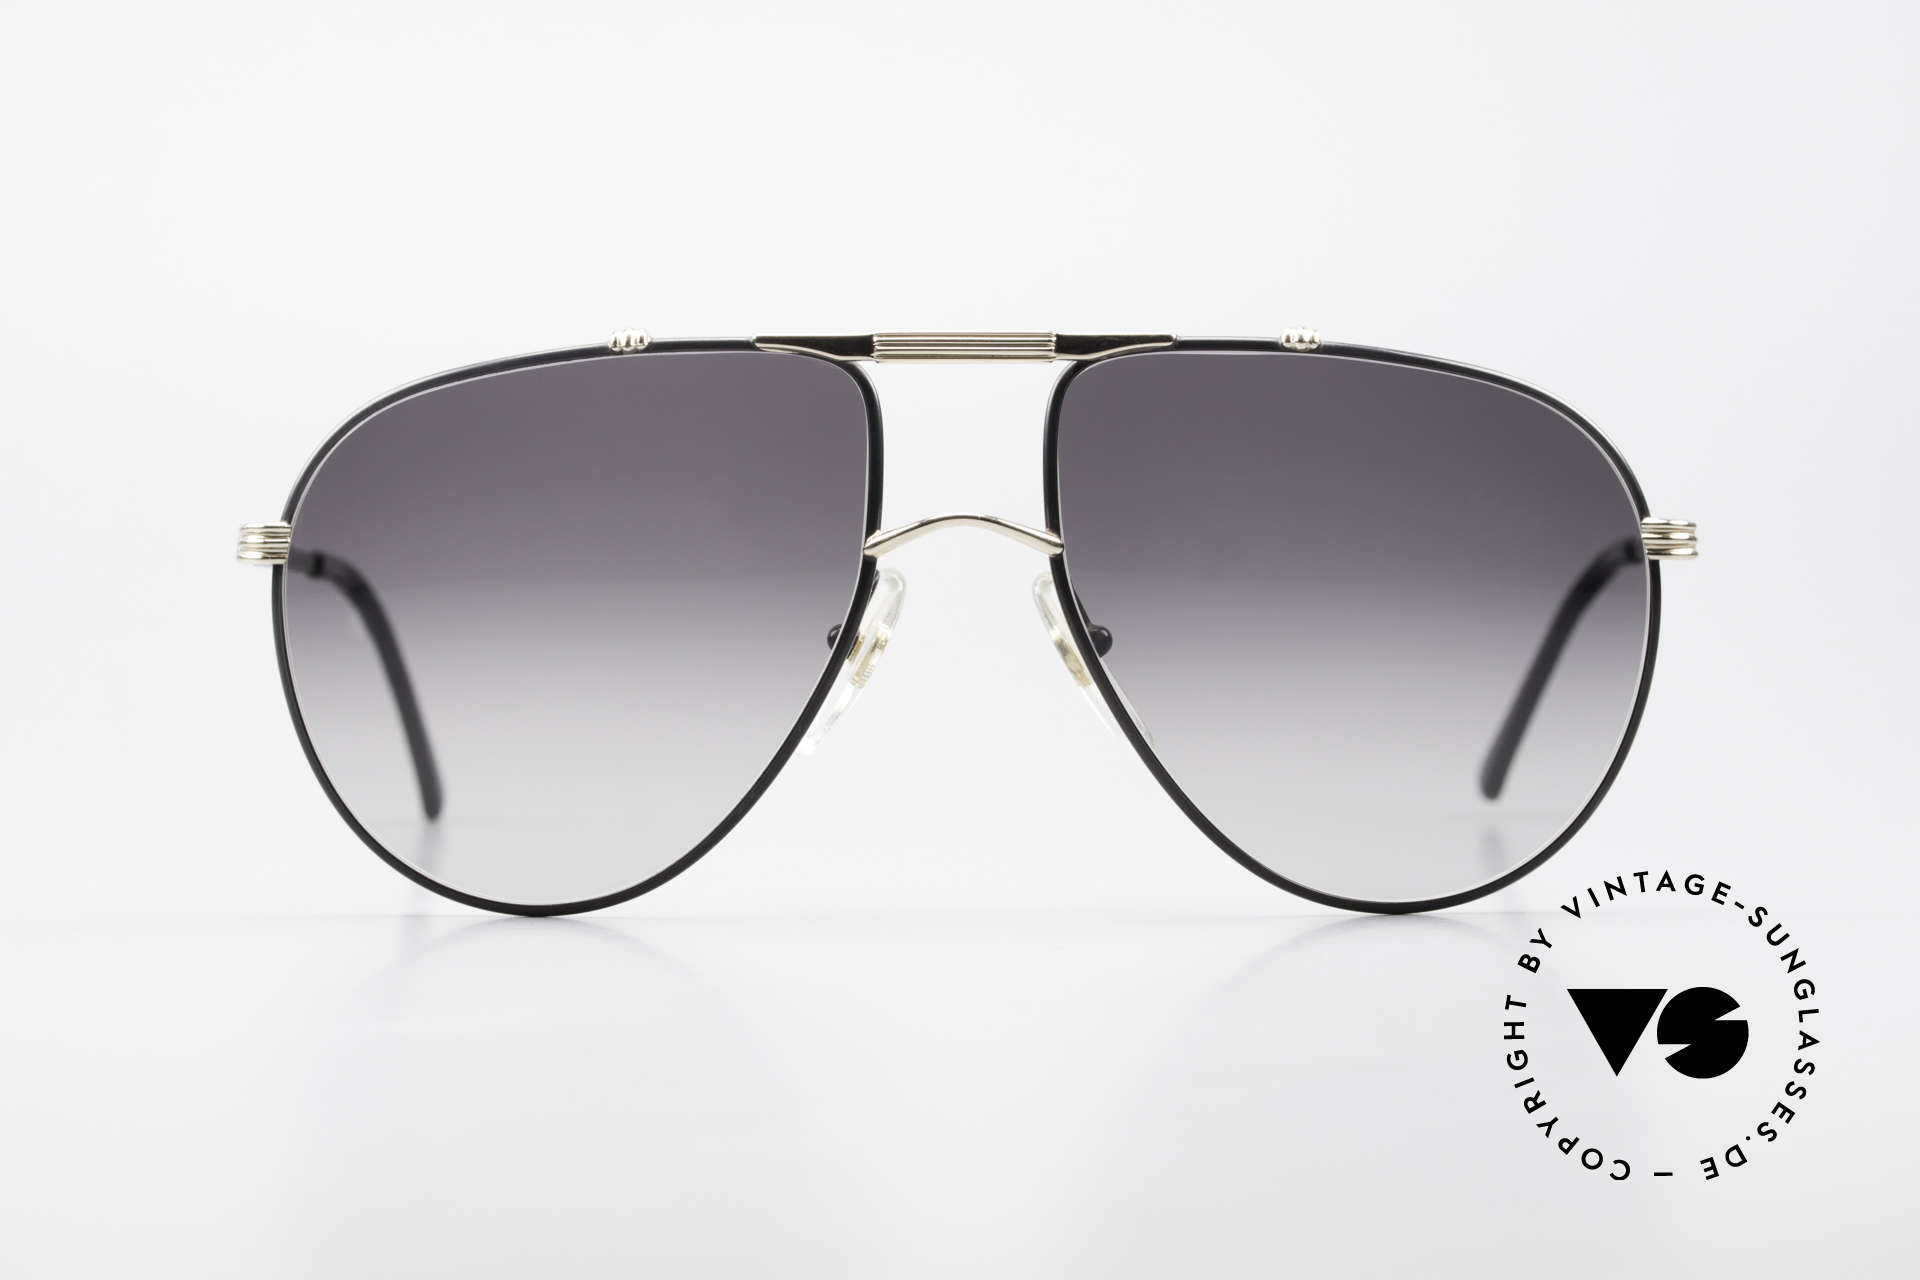 Christian Dior 2248 80's Aviator Large Sunglasses, rare designer sunglasses from 1984; truly 80's vintage, Made for Men